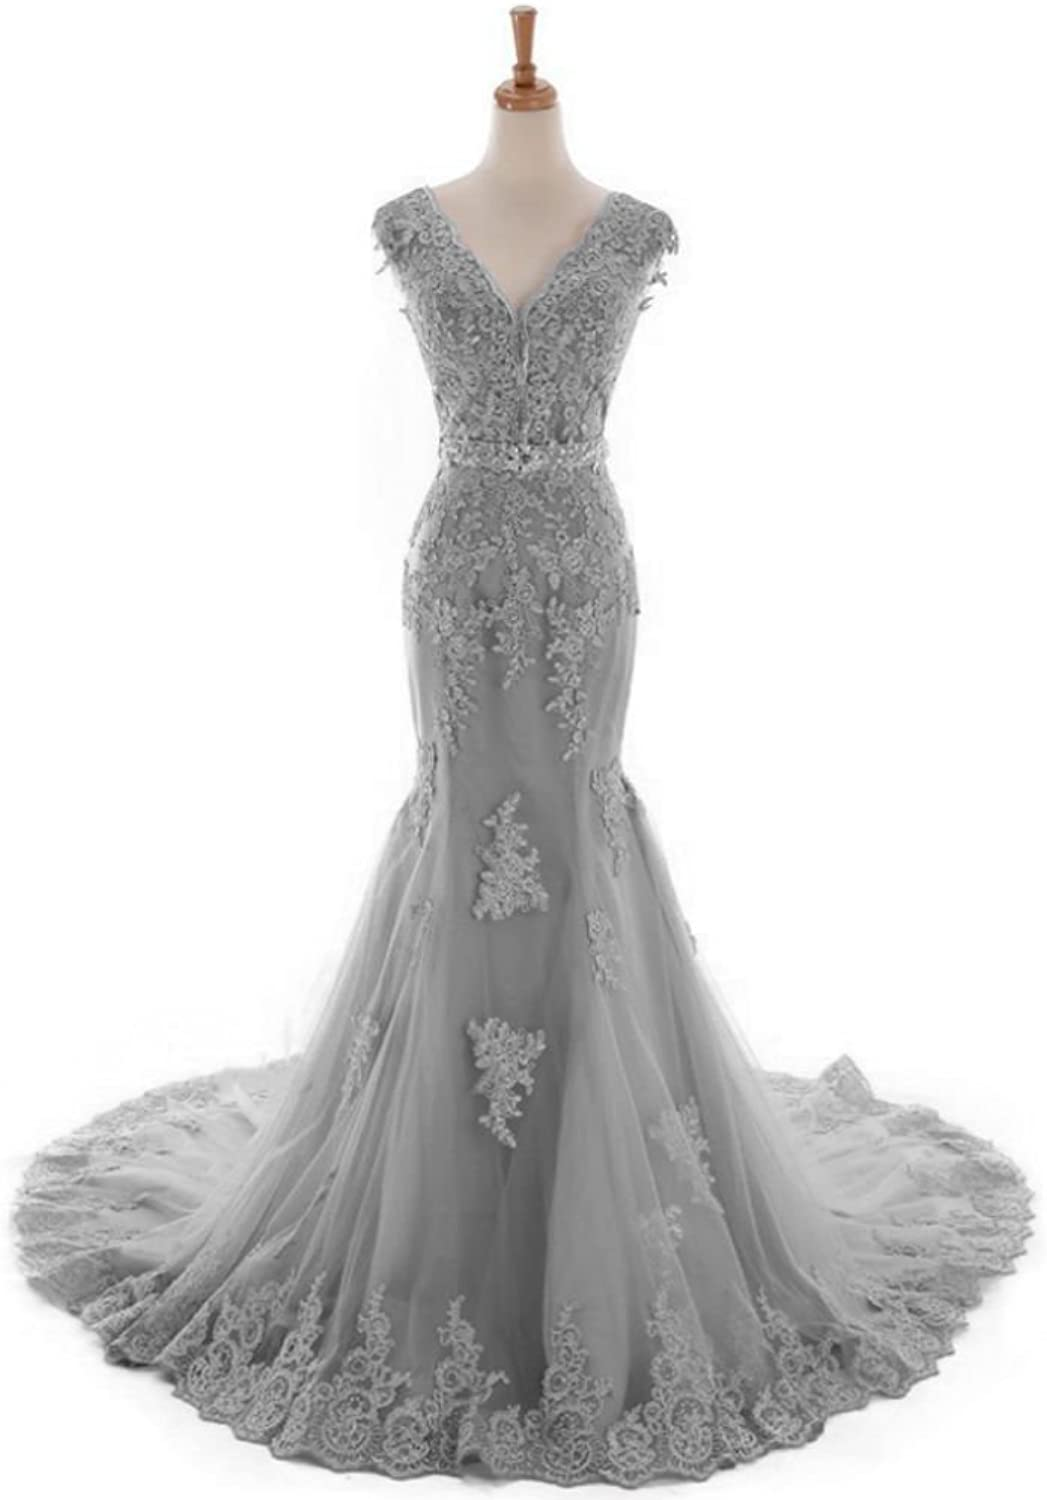 QY Bride Gorgeous Lace Mermaid Wedding Reception Prom Dresses for Bride